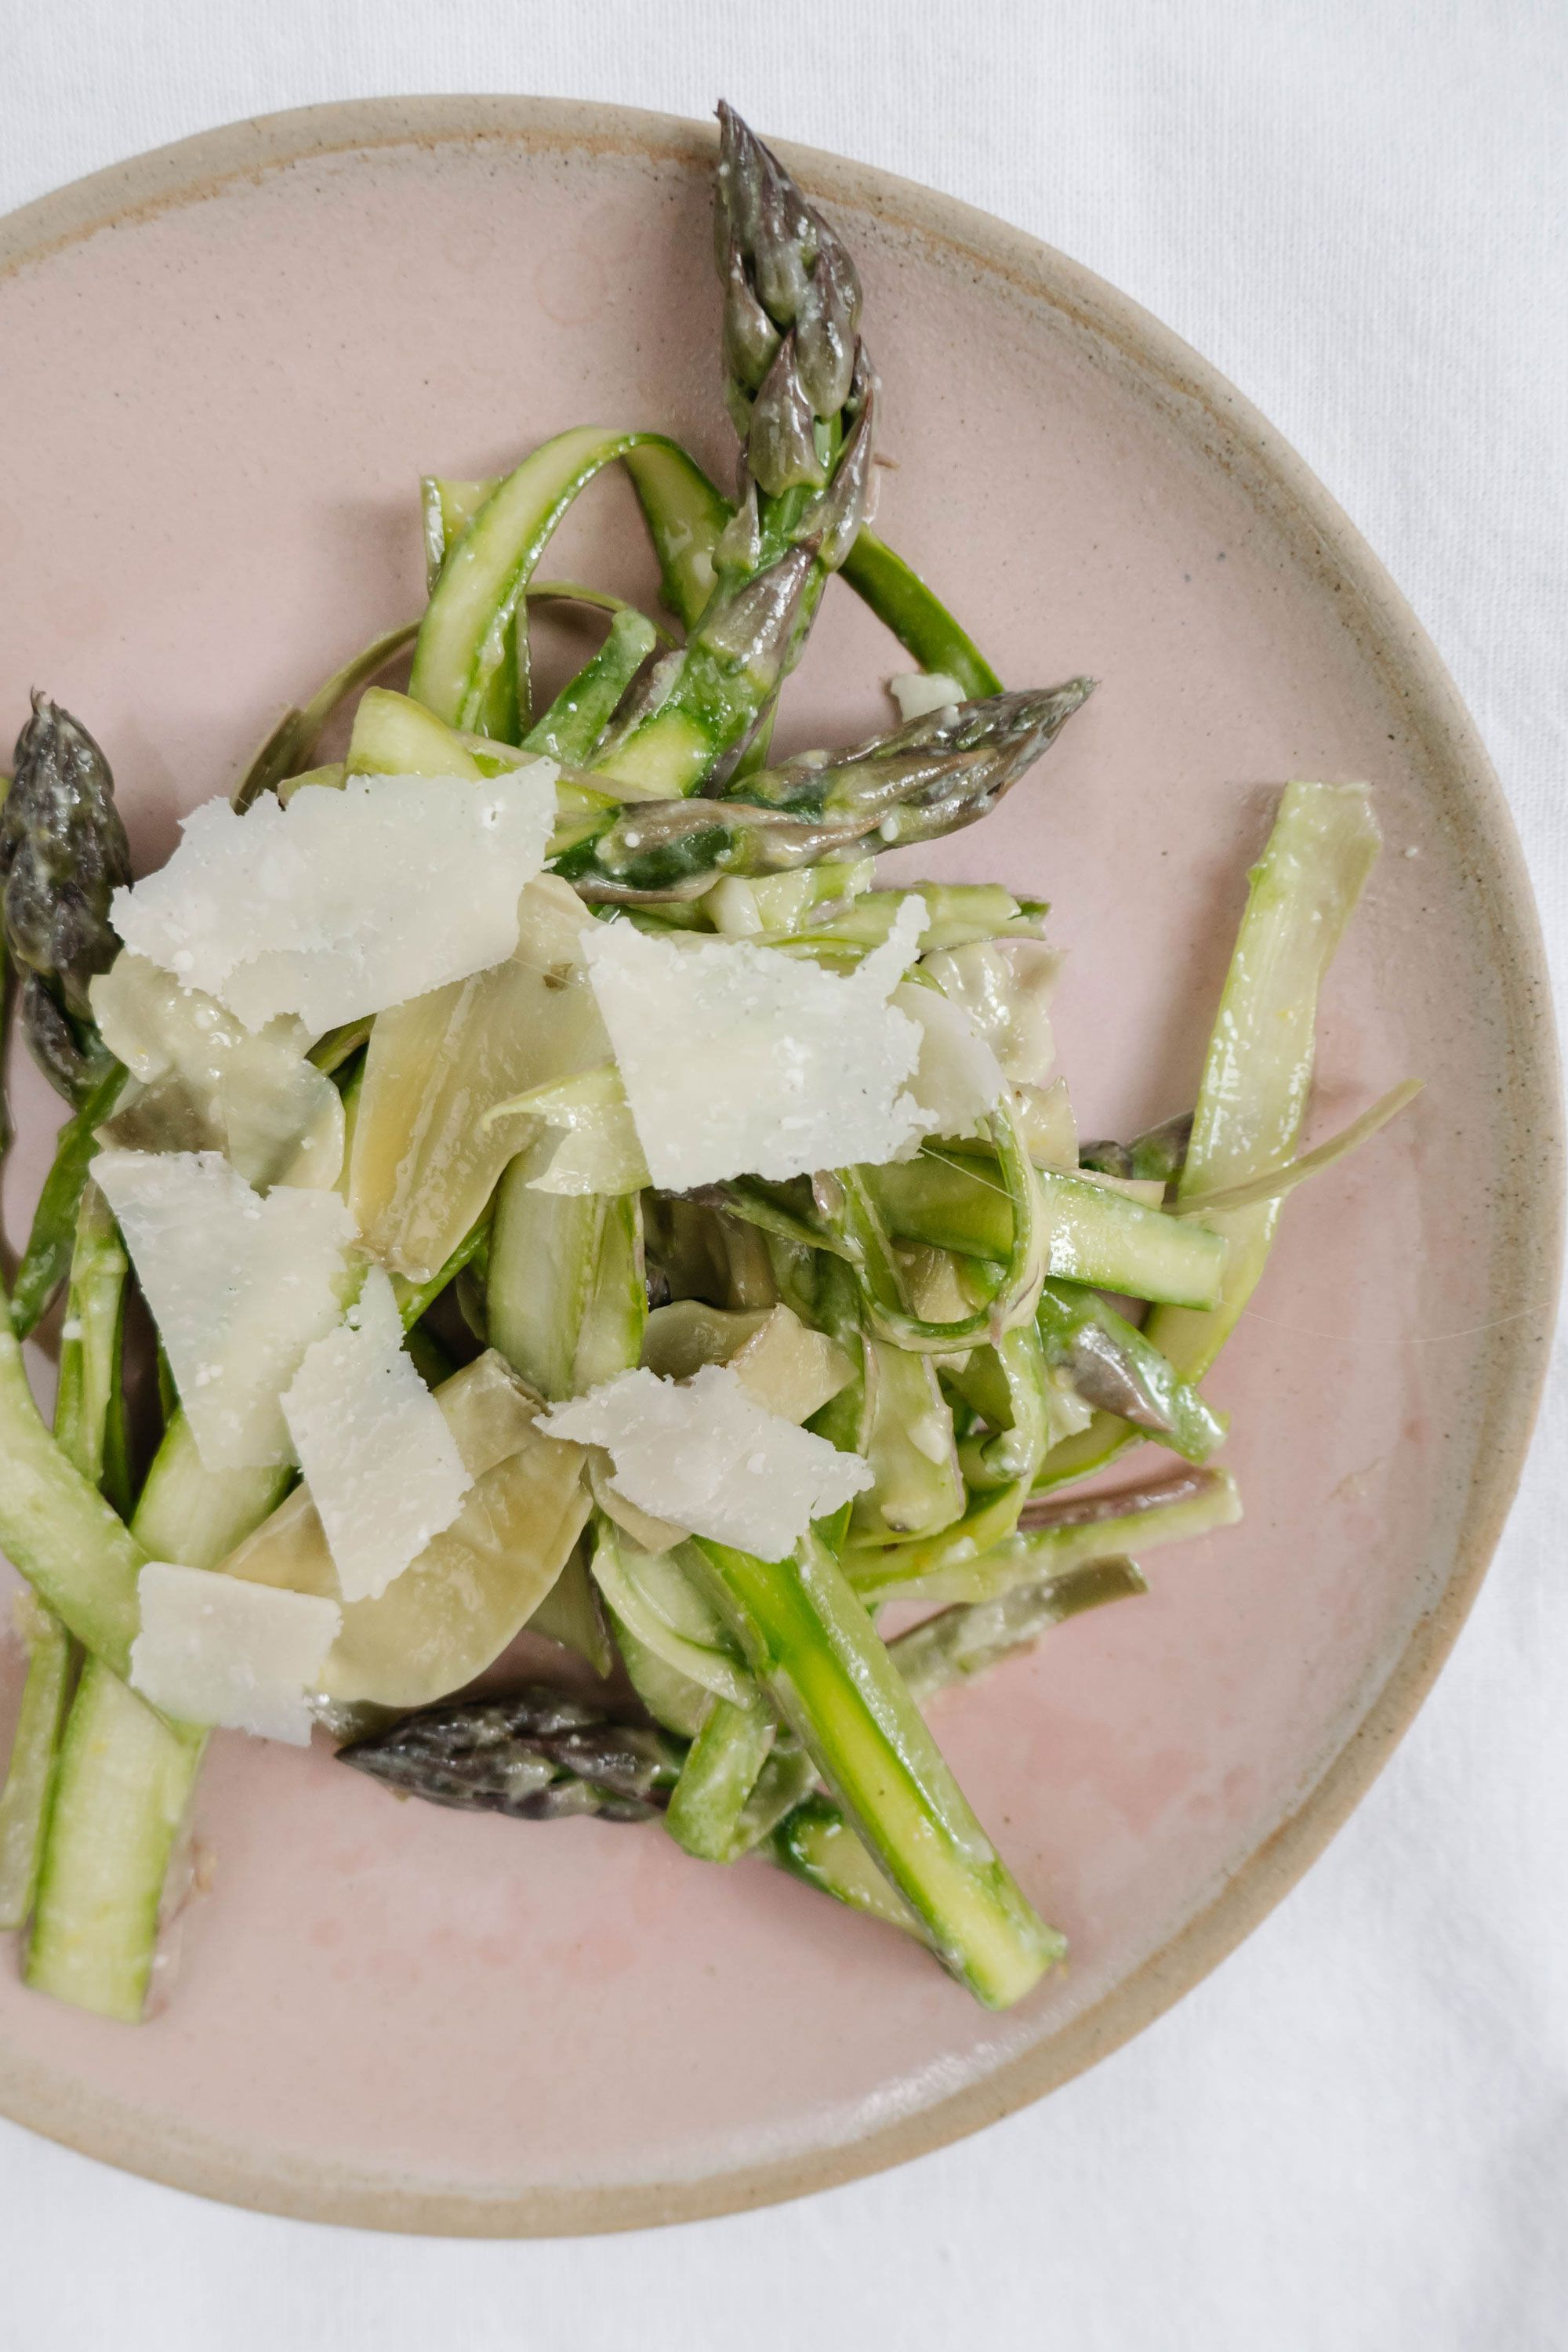 Taste the bounty of spring with this asparagus and artichoke salad